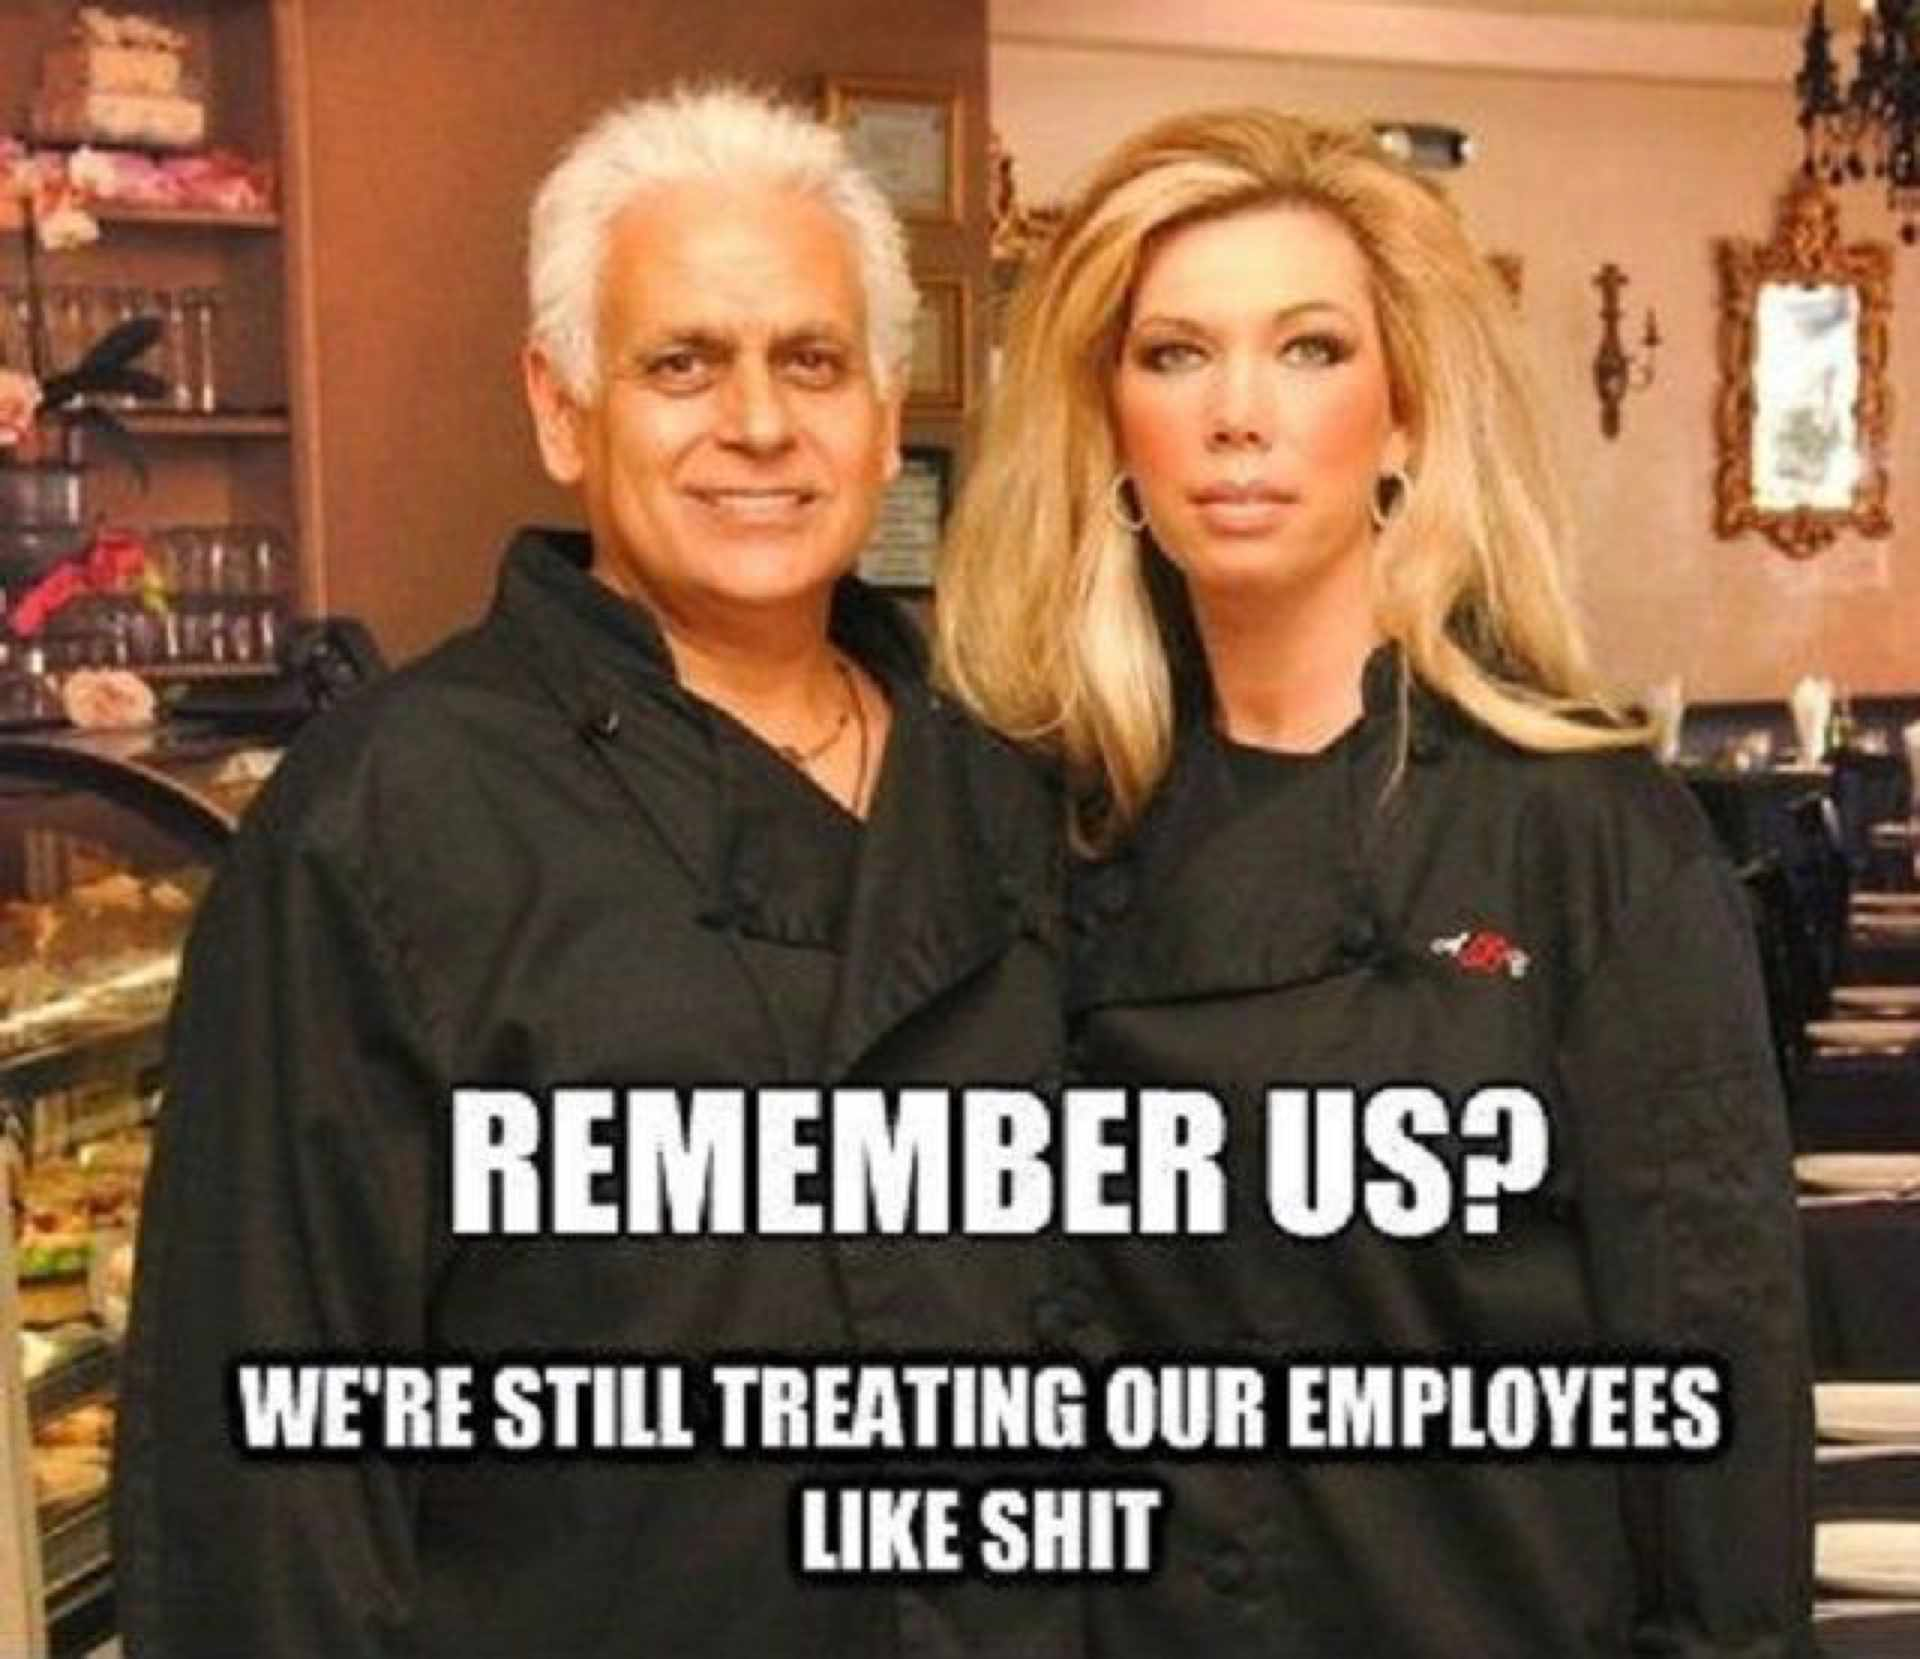 Meme of two people in a bakery.